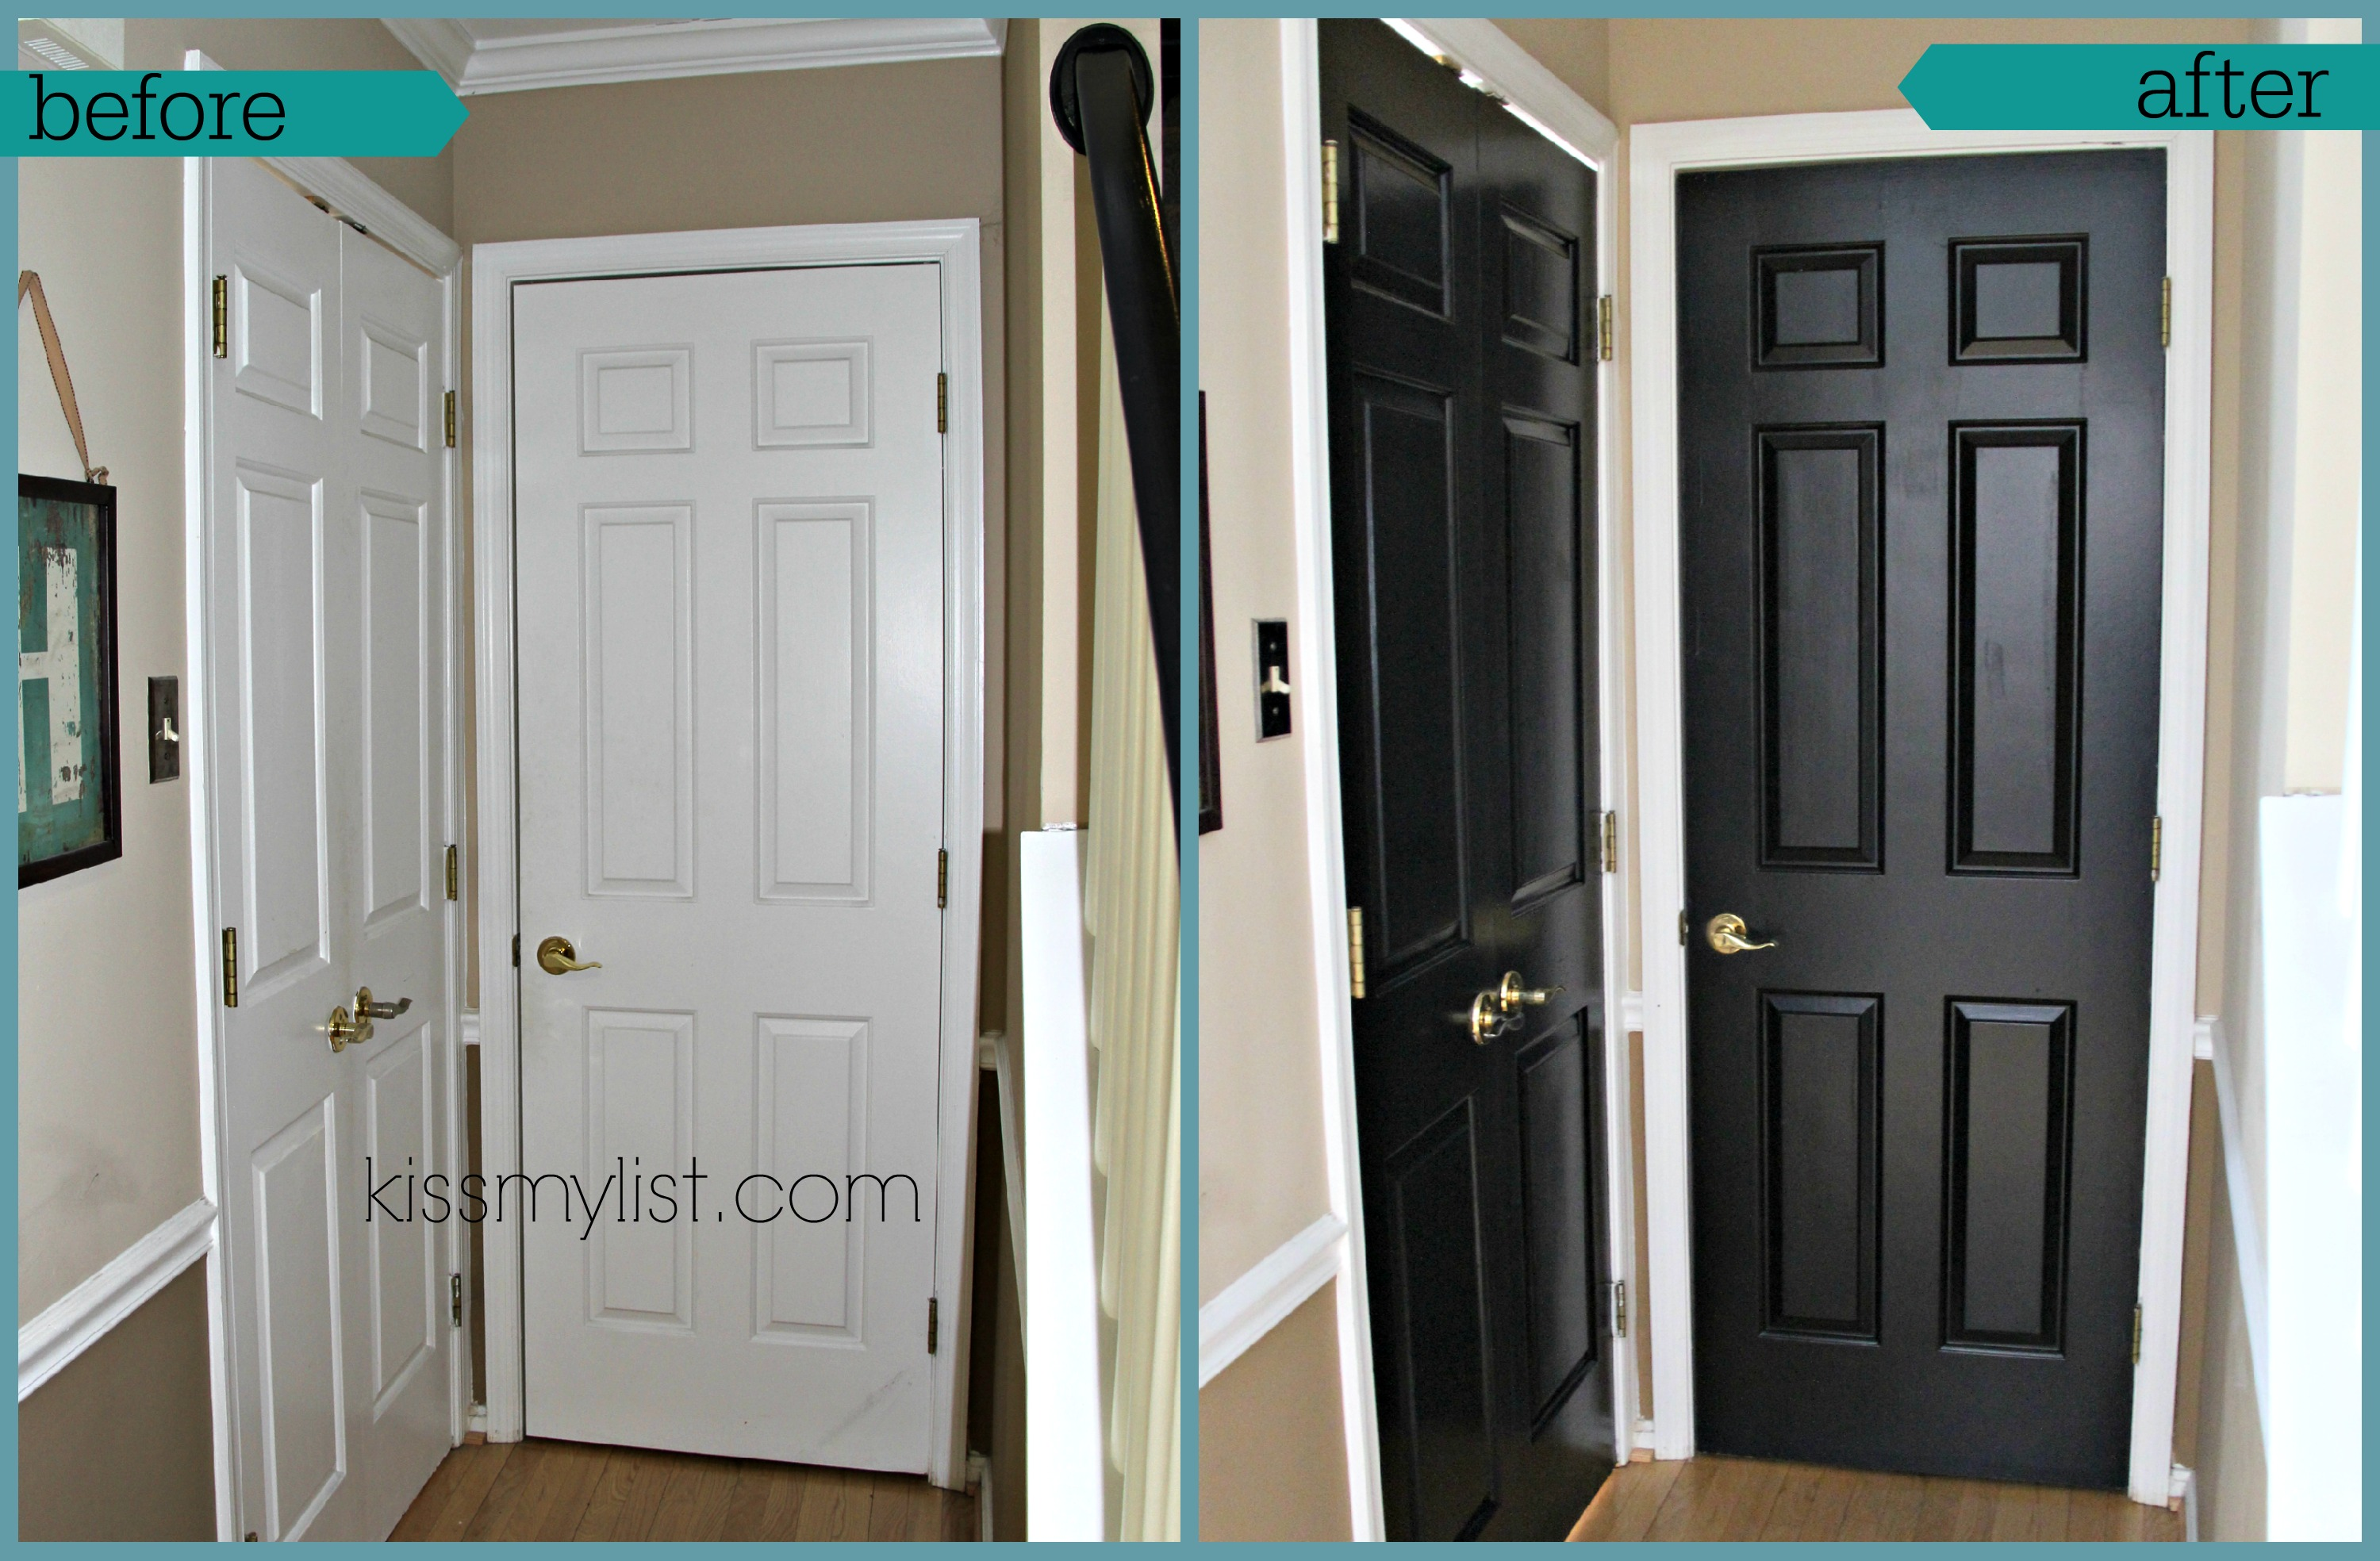 Painting Interior Doors Black : Painting interior doors black kiss my list